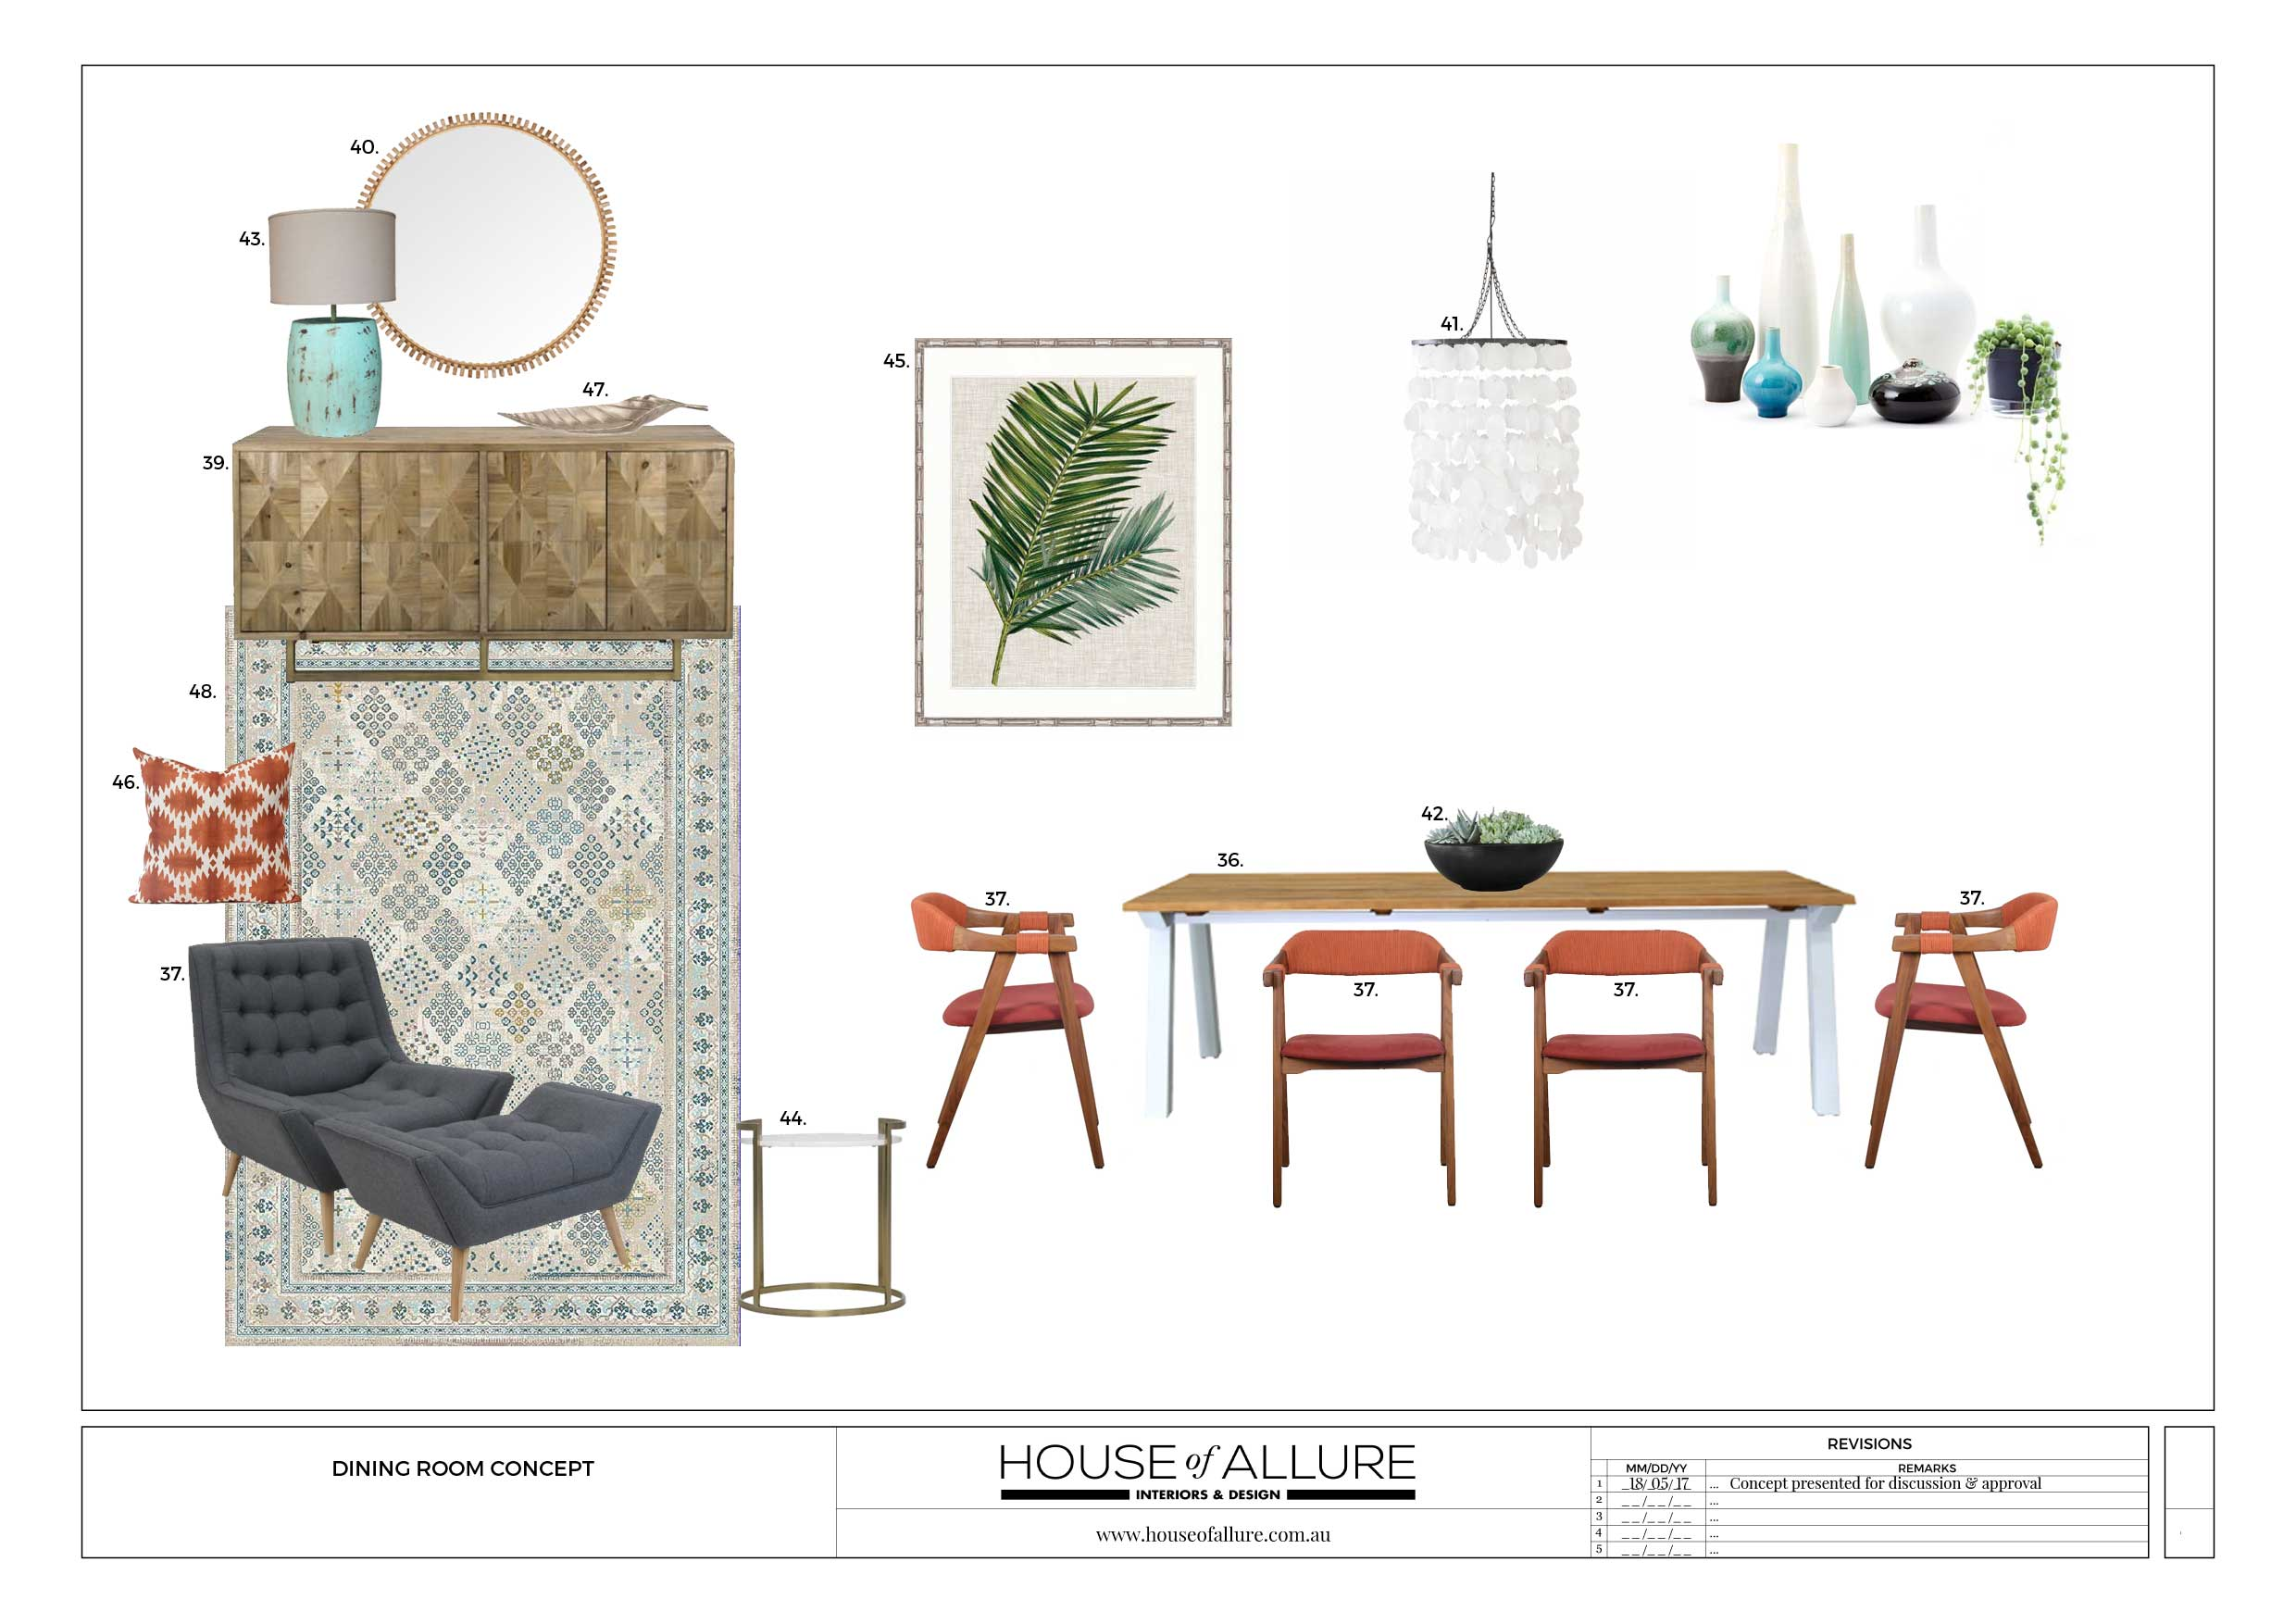 e-decorating for dining room